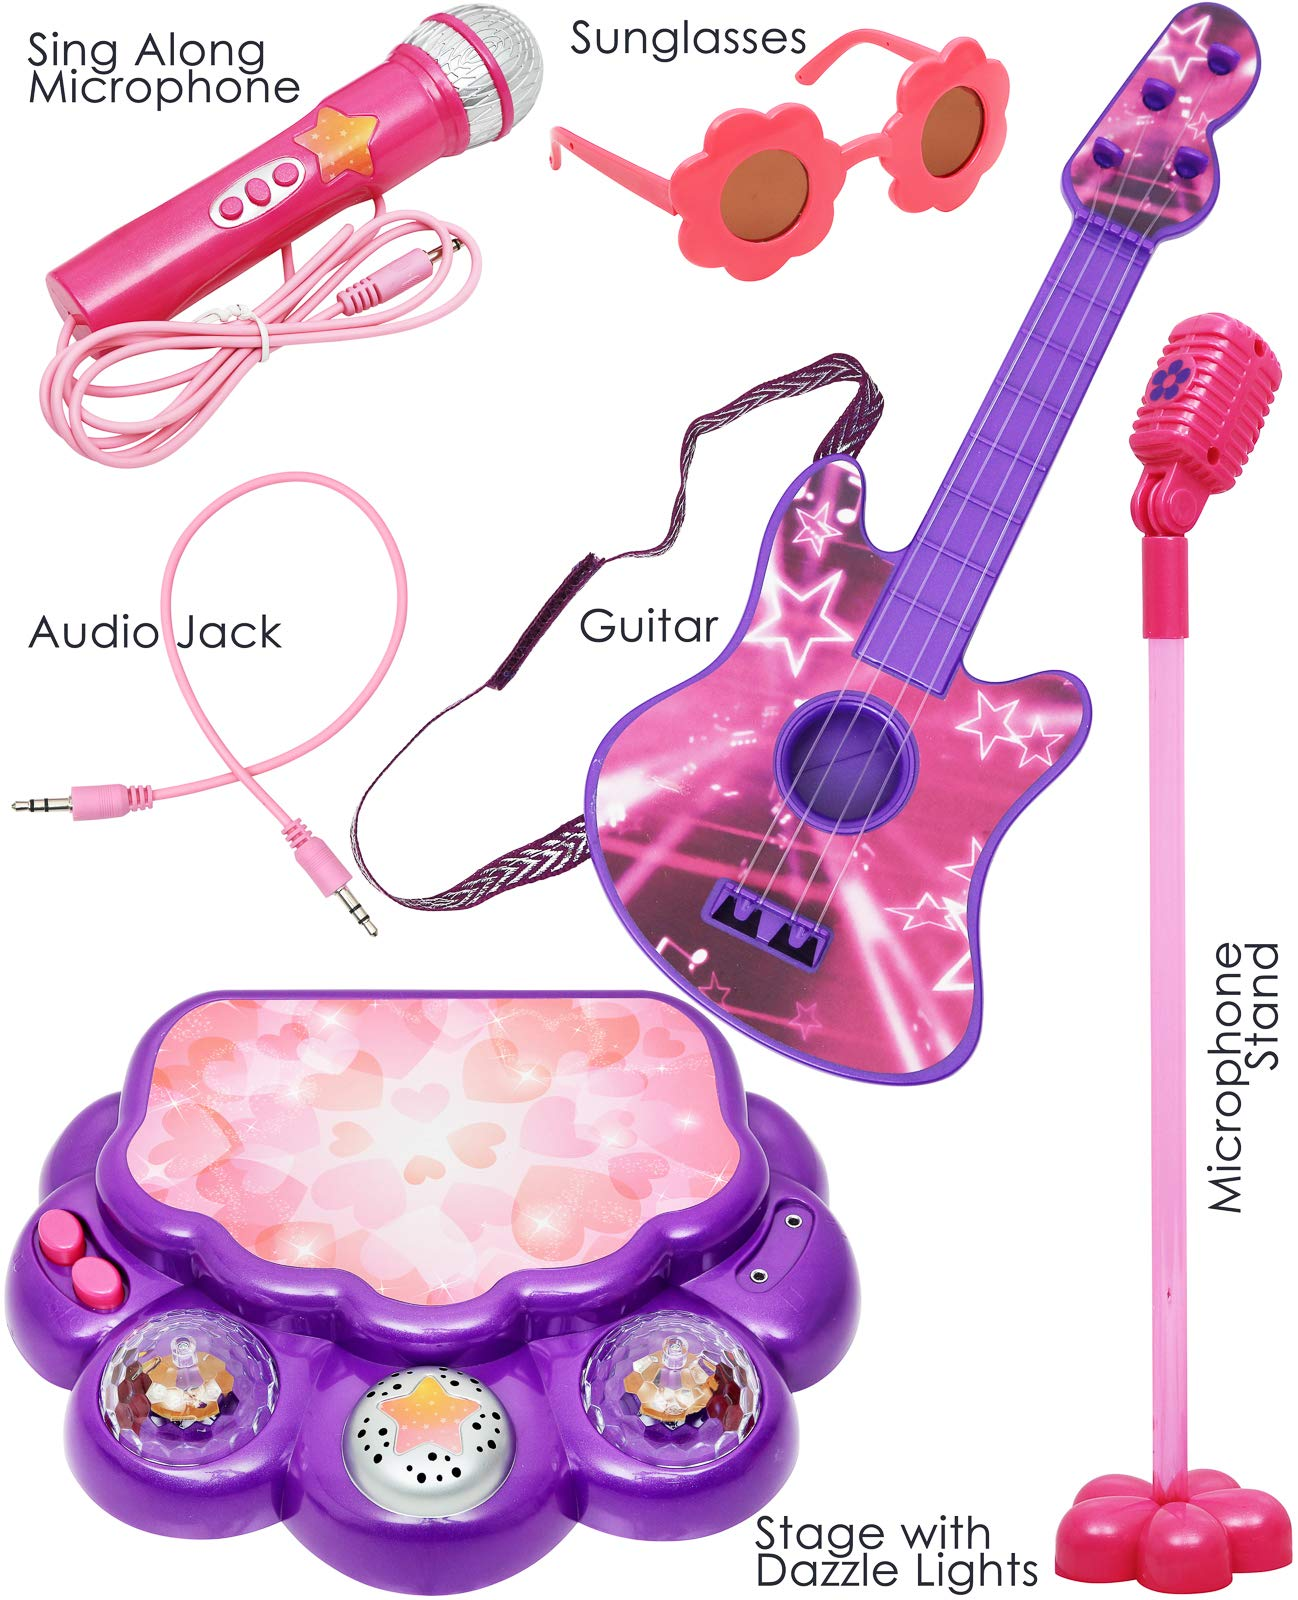 Kids Doll Interacting Toy Karaoke Machine Performance Stage Disco LED Lights, Guitar, Microphone with Stand Sunglasses Smartphone MP3 Connectivity Sing-Along Perfect For 18 inch American Girl Dolls by Click N' Play (Image #2)